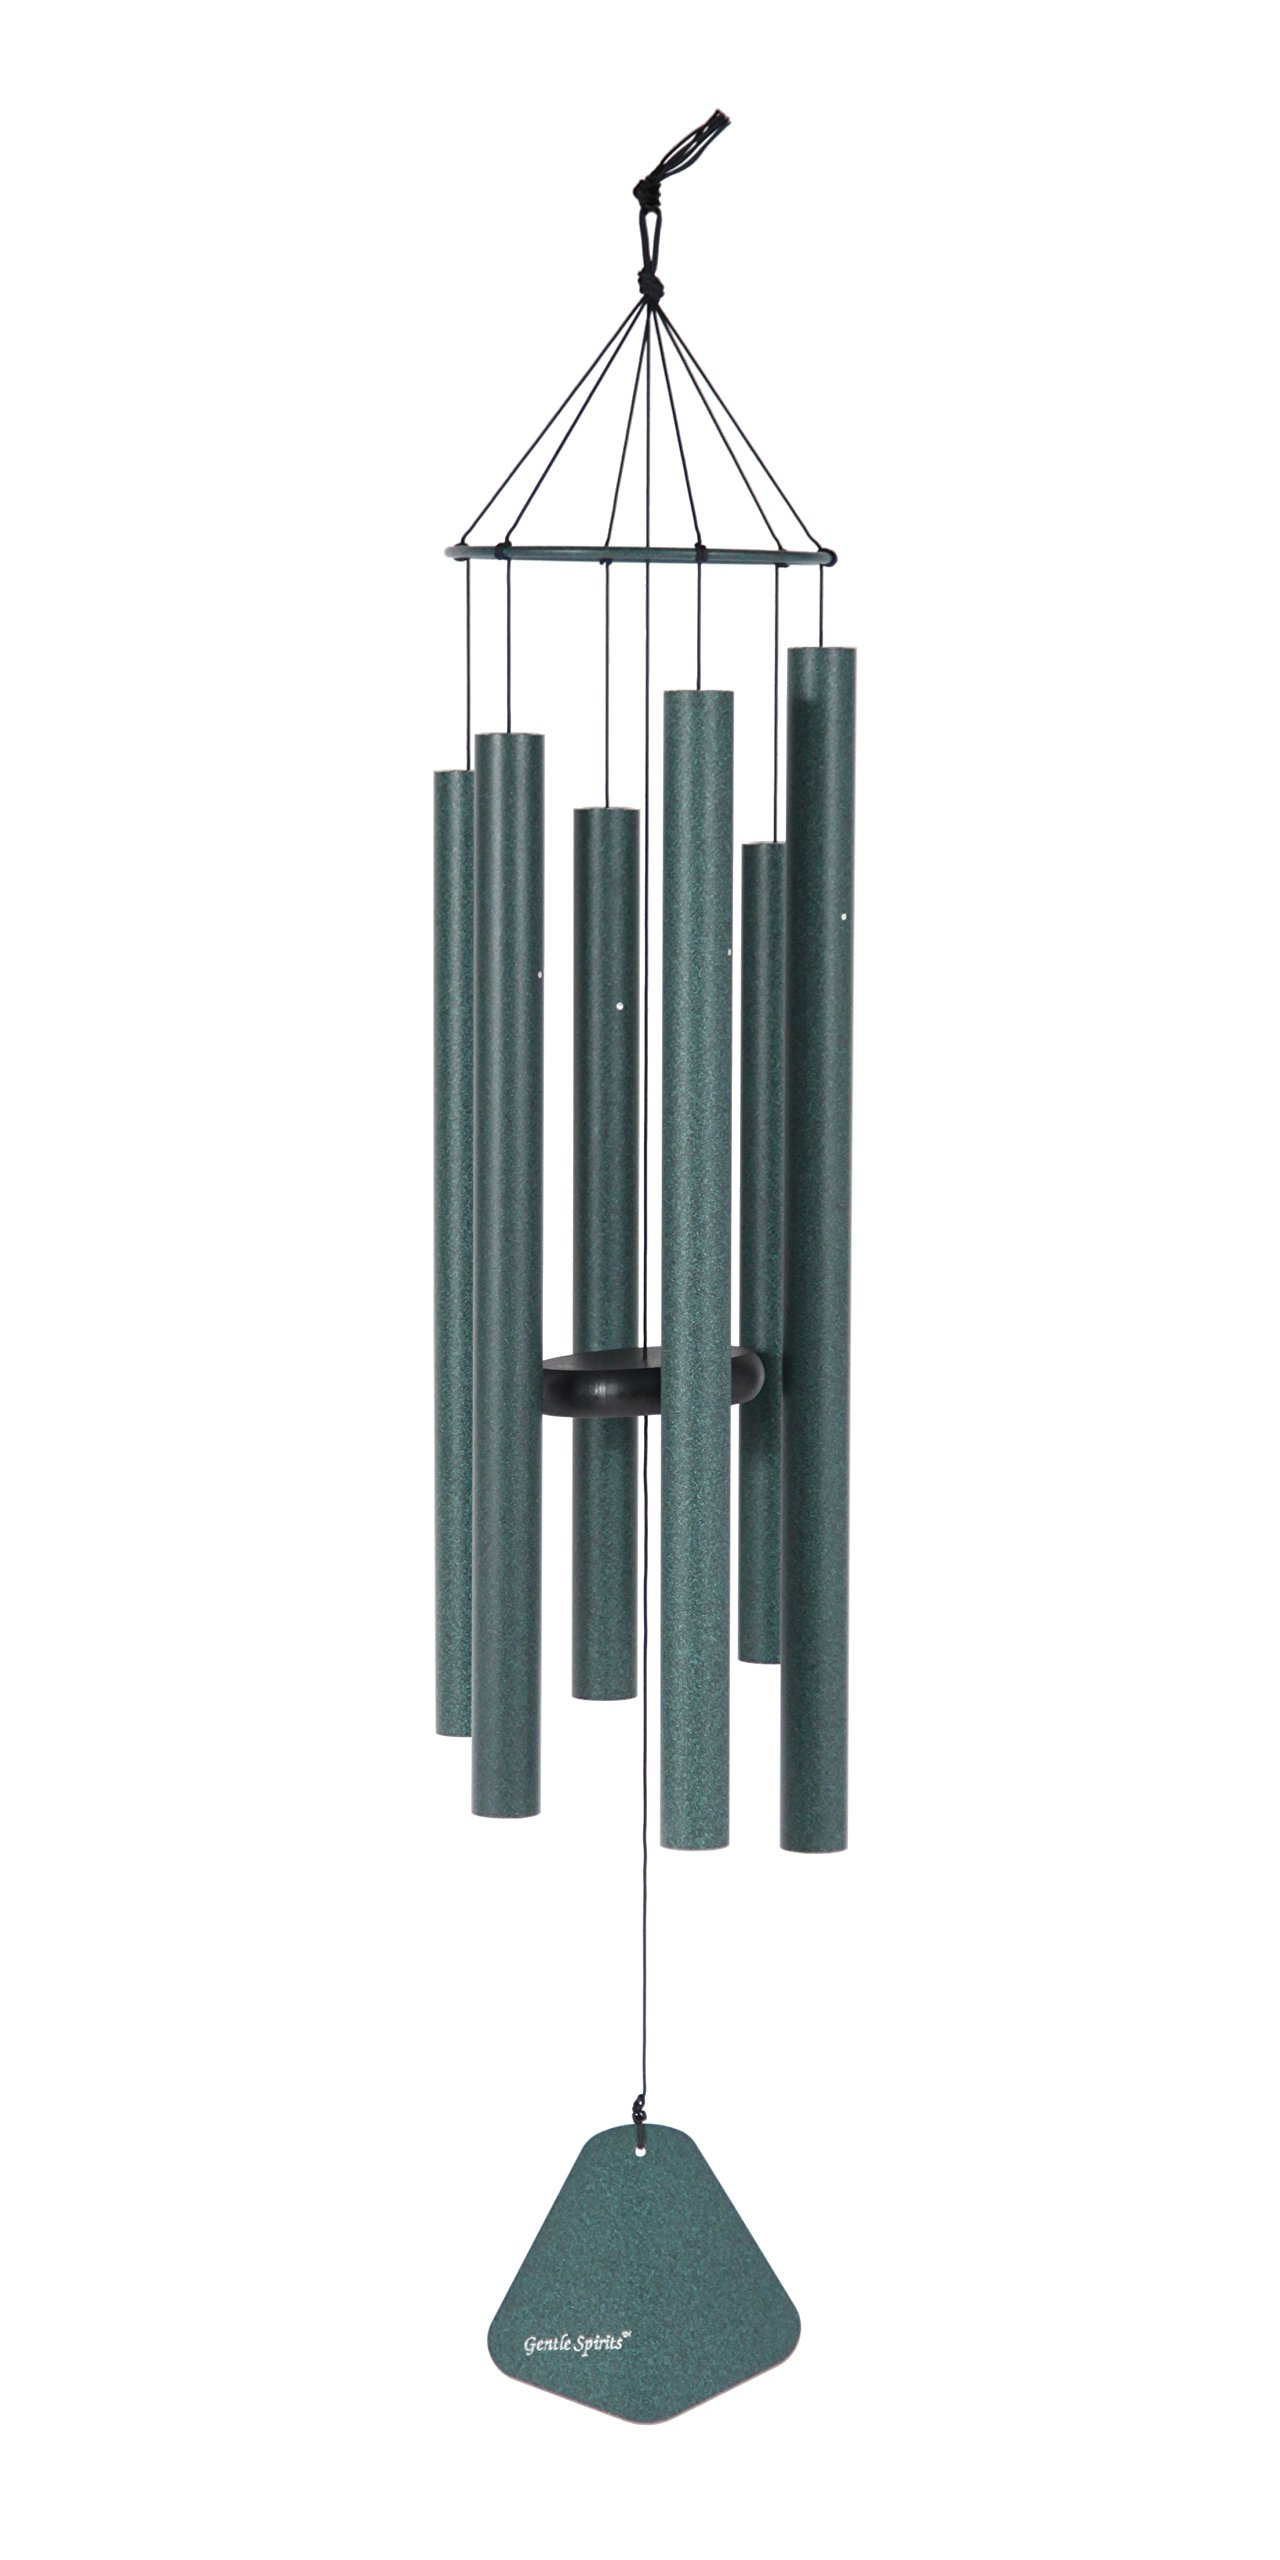 Gentle Spirits 50-inch Windchime, Green